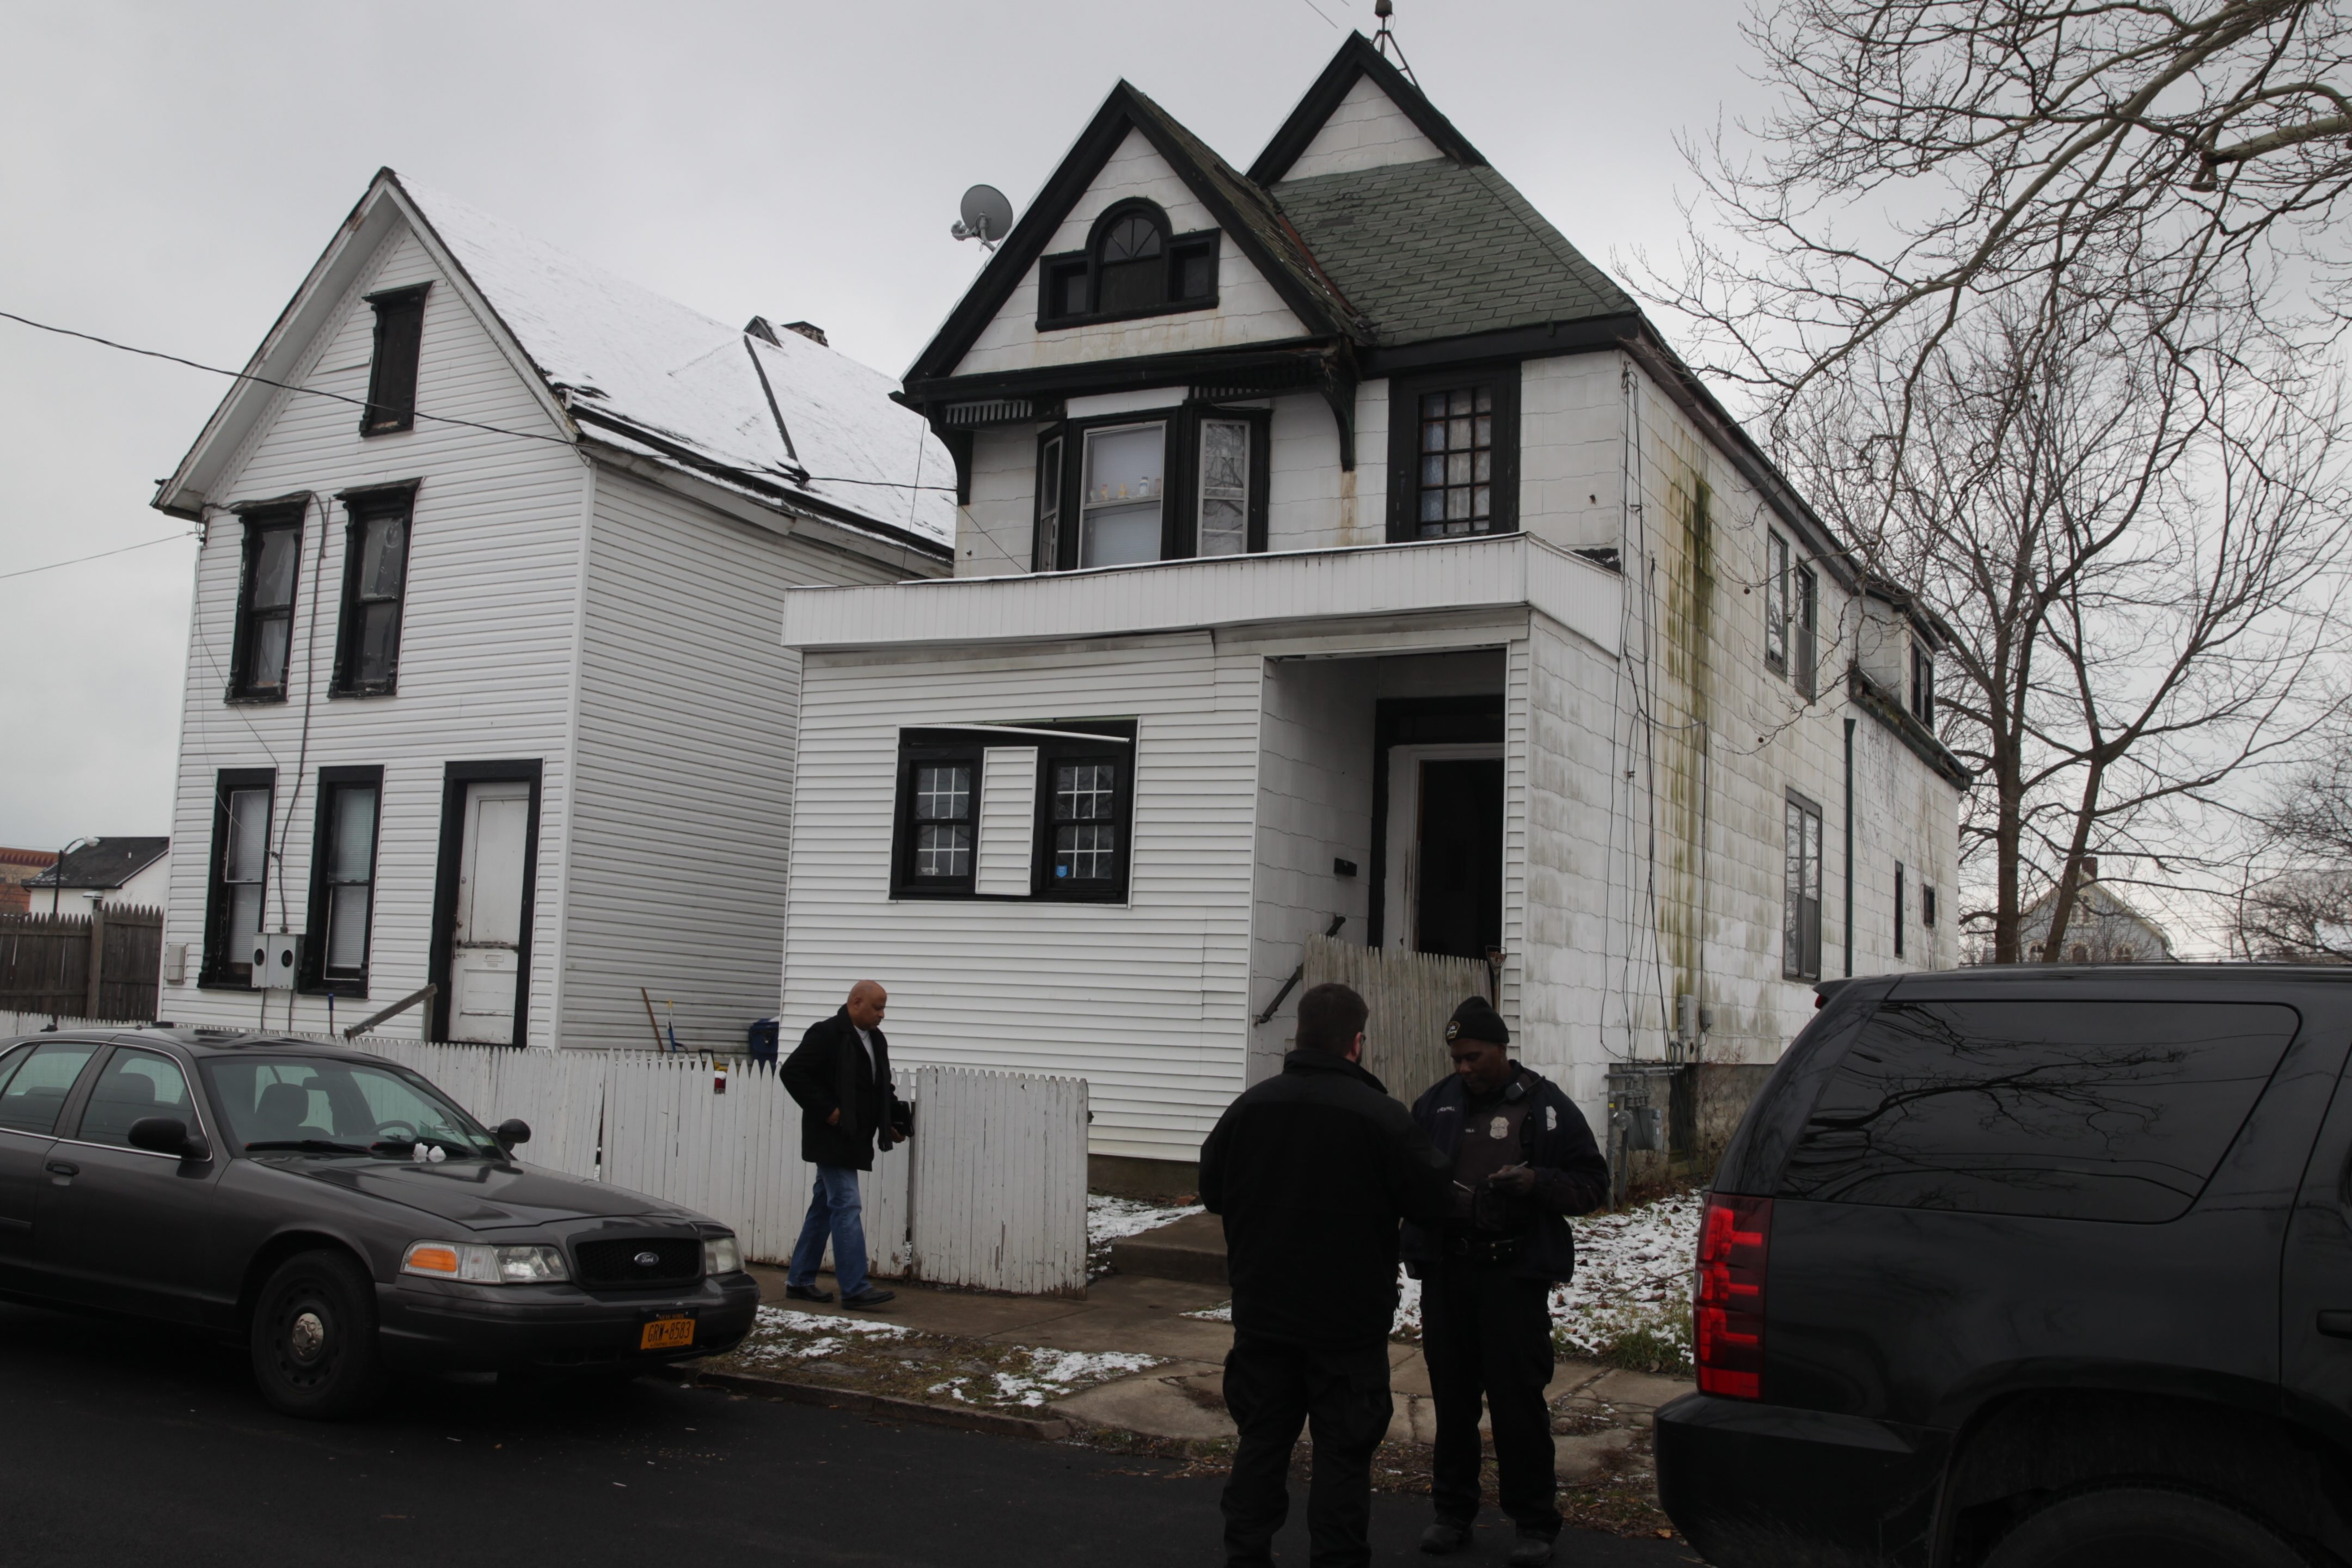 Buffalo Police and the Erie County medical examiner were on the scene at 212 Watson St., where a woman and a man were found dead.